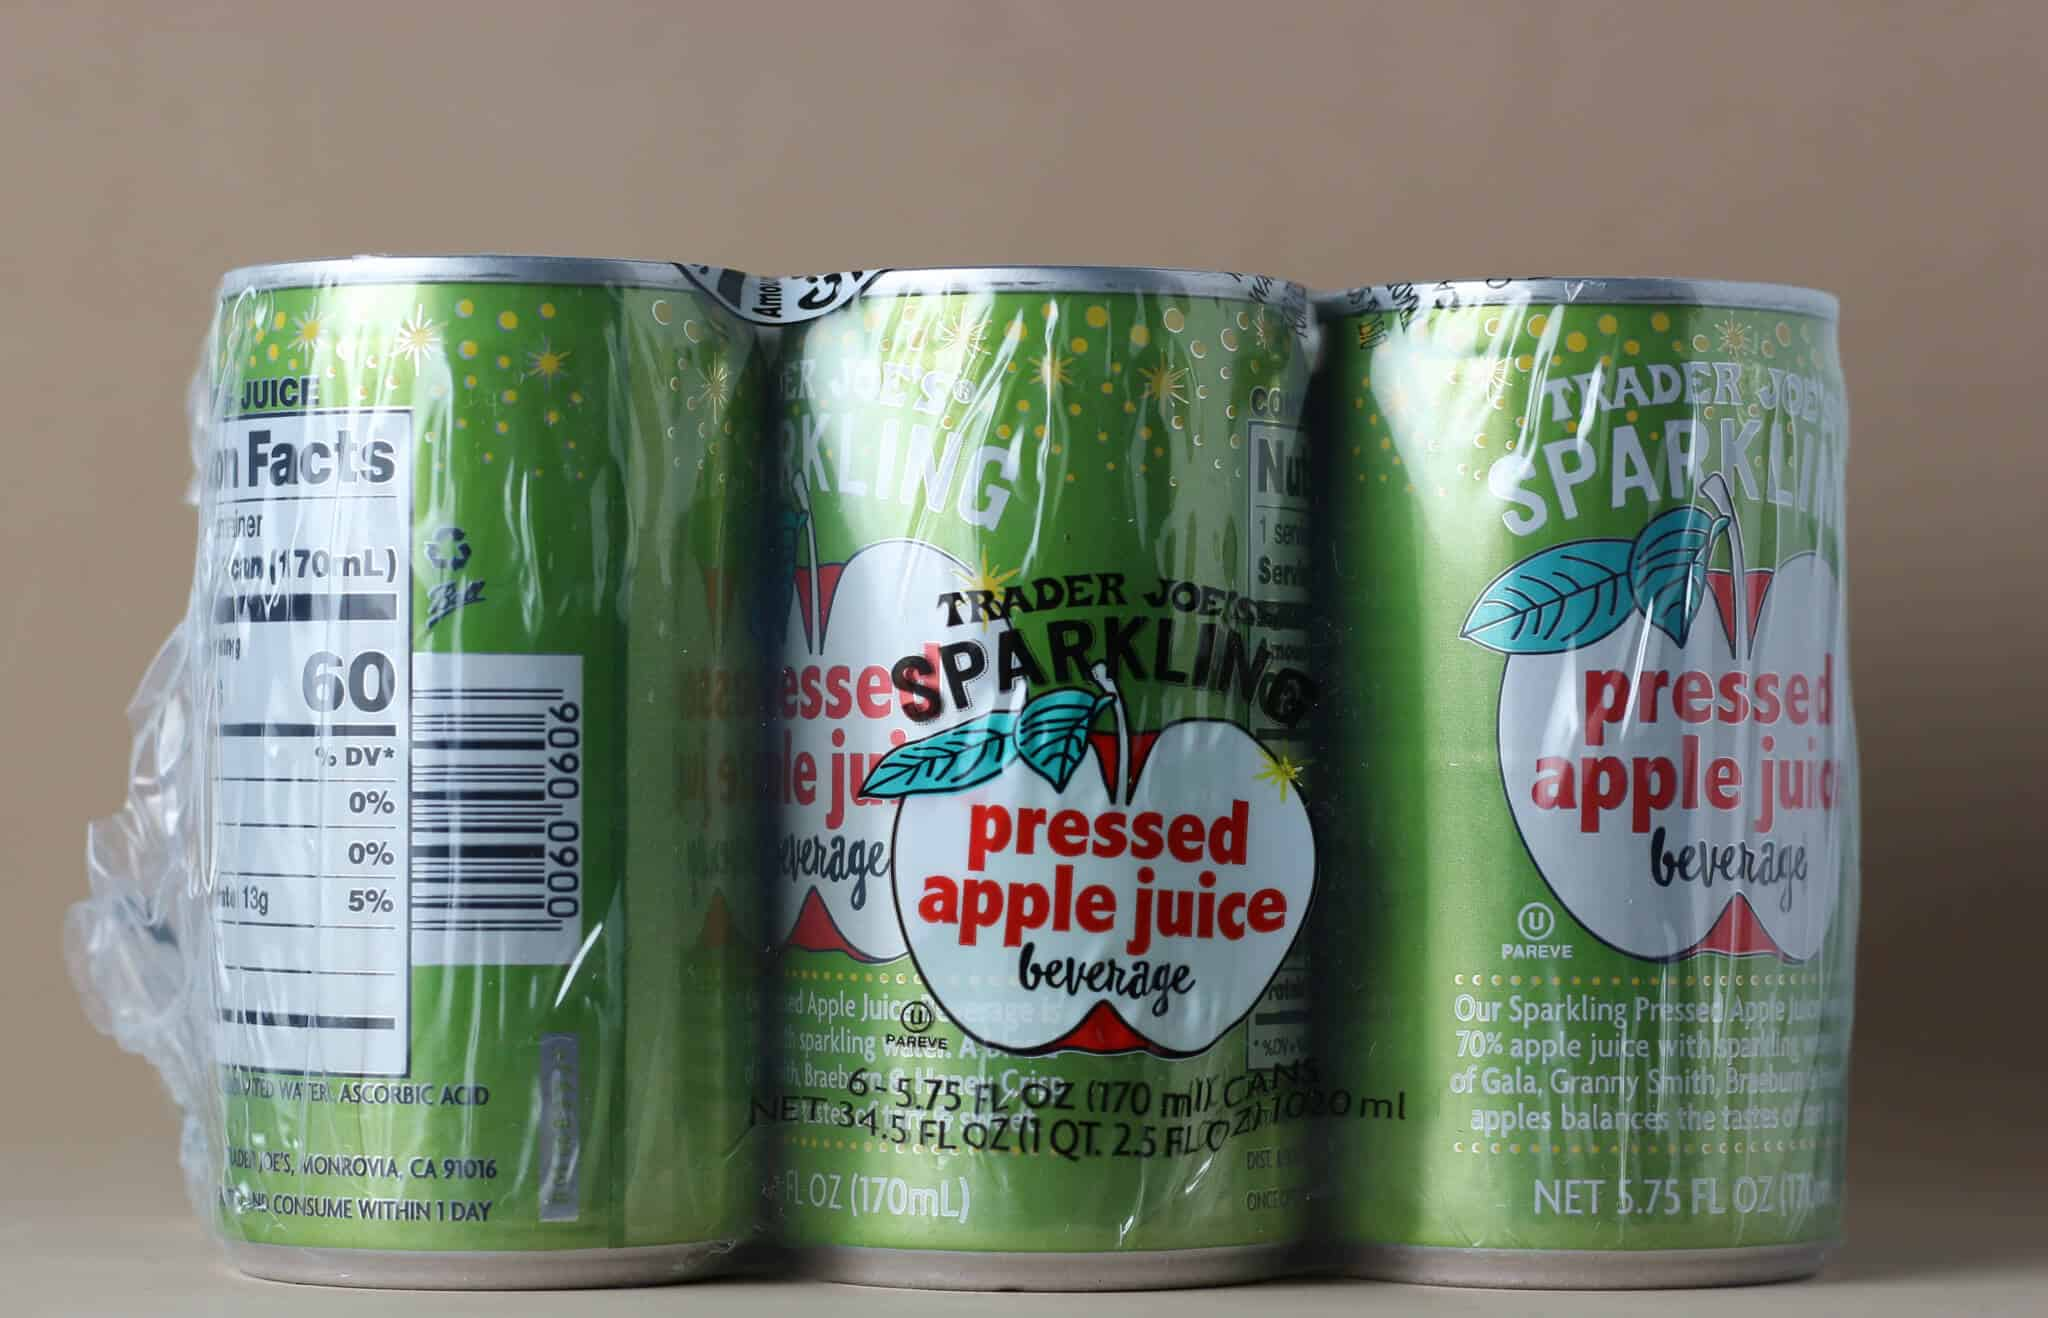 Trader Joe's Sparkling Pressed Apple Juice Beverage cans in a six pack